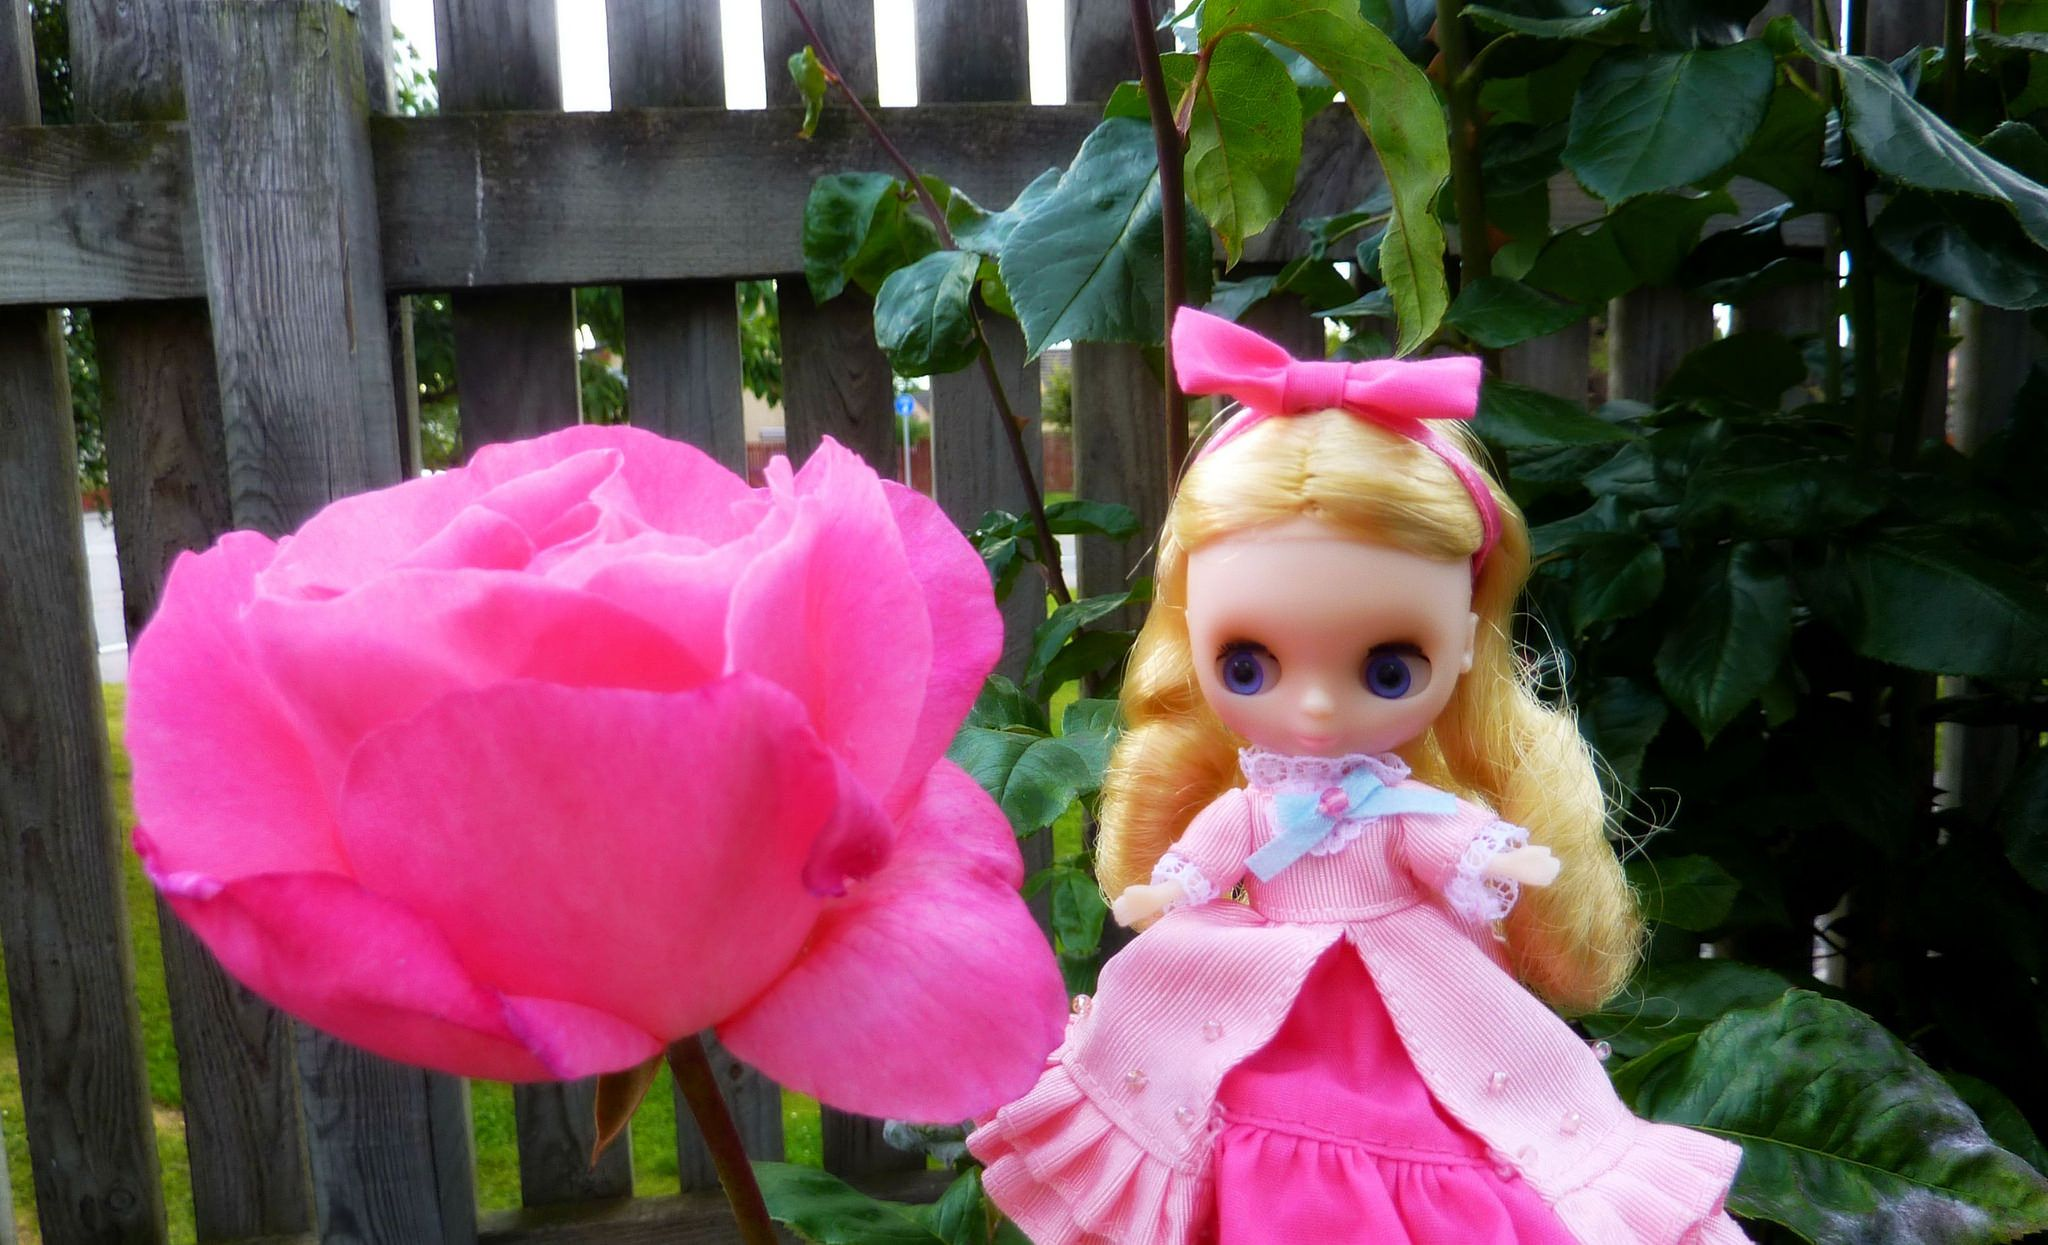 https://flic.kr/p/x6M9rS   This rose is almost bigger than Fawn Giselle! 196/365